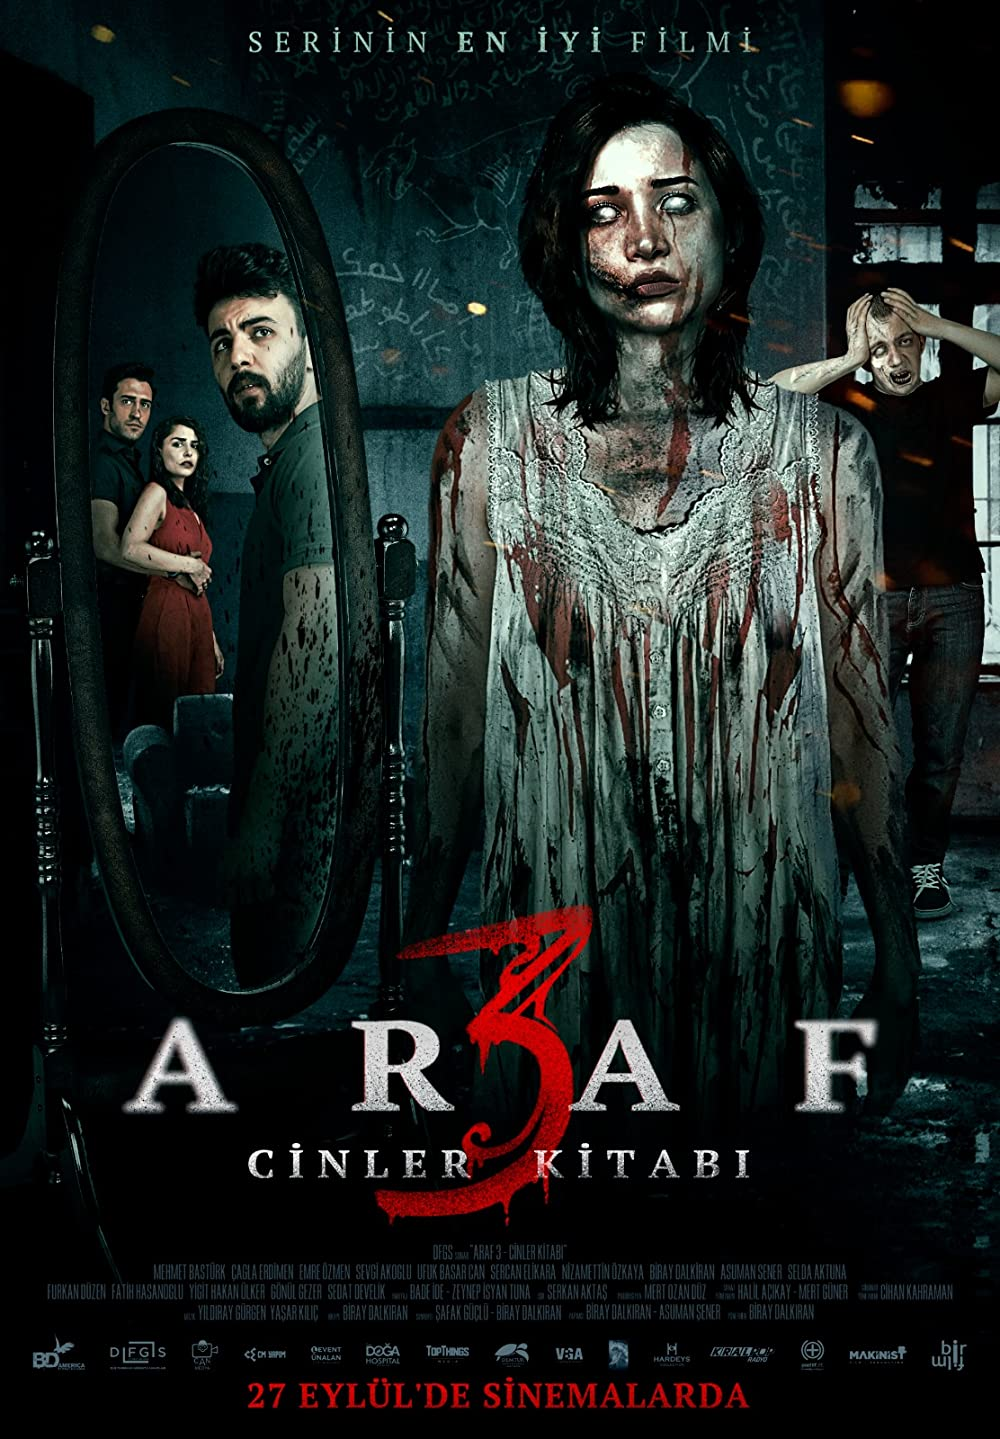 Araf 3: Cinler Kitabi 2019 Hindi Dual Audio 302MB HDRip ESubs Download